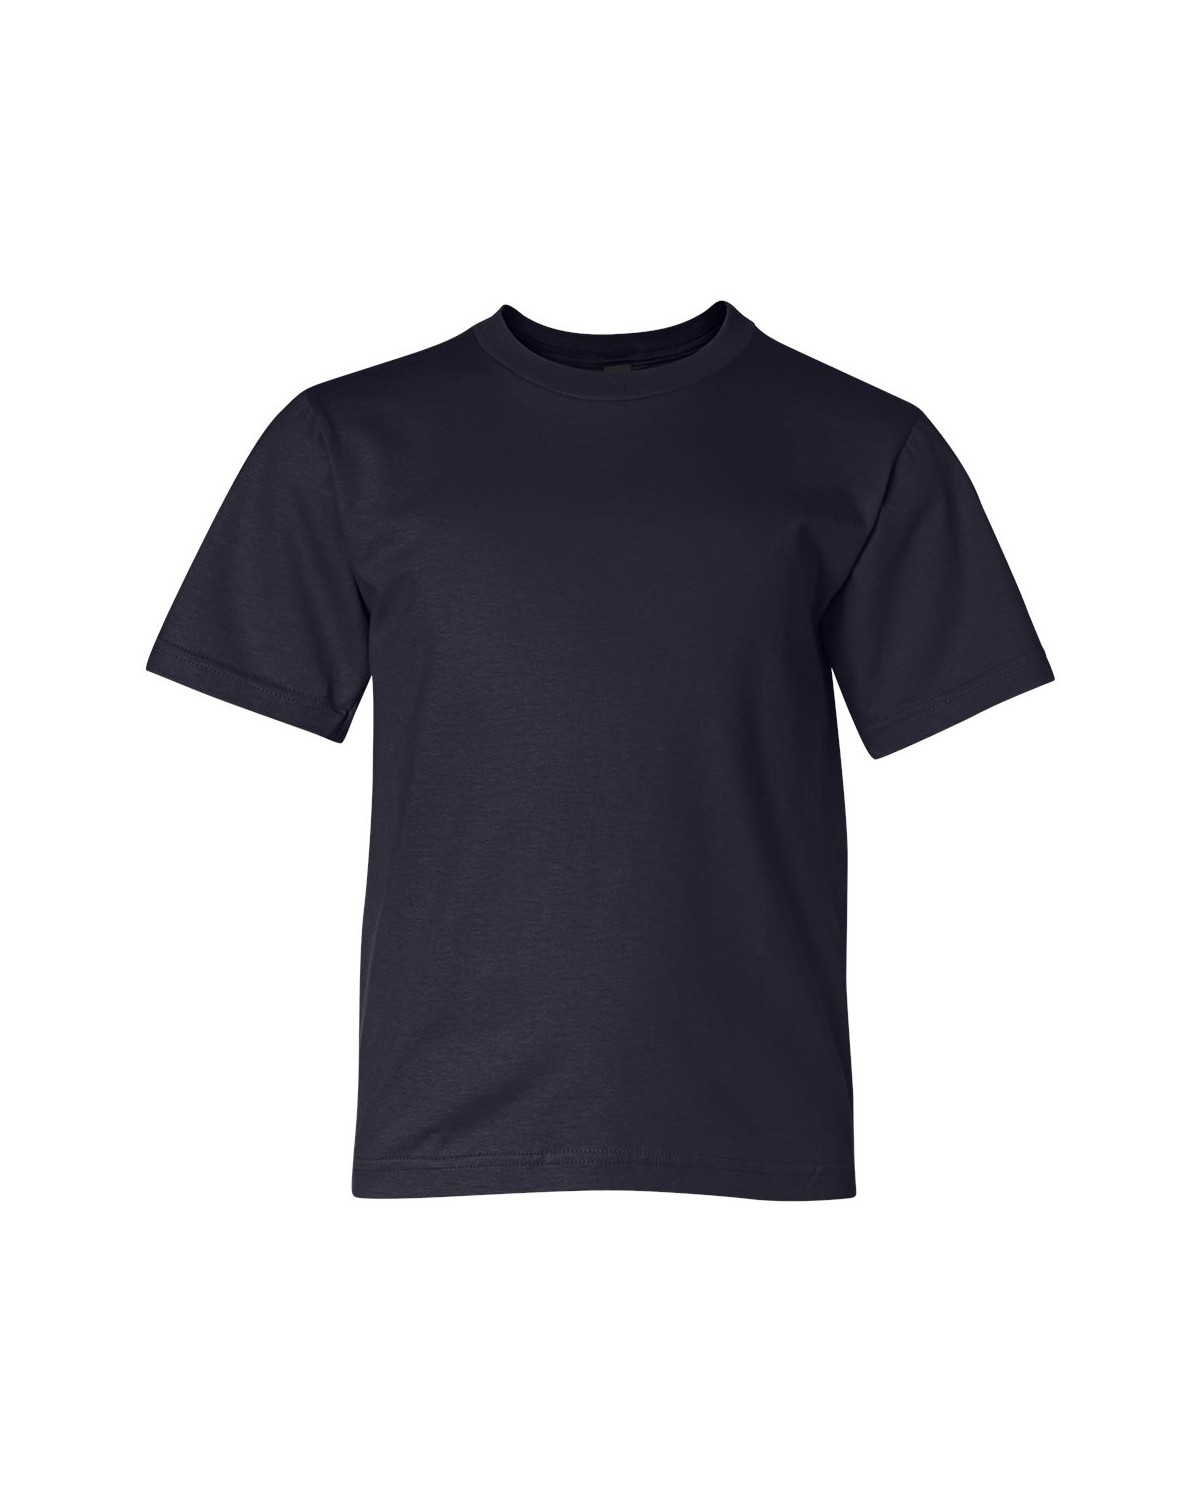 SS4001YZ Independent Trading ROYAL HEATHER